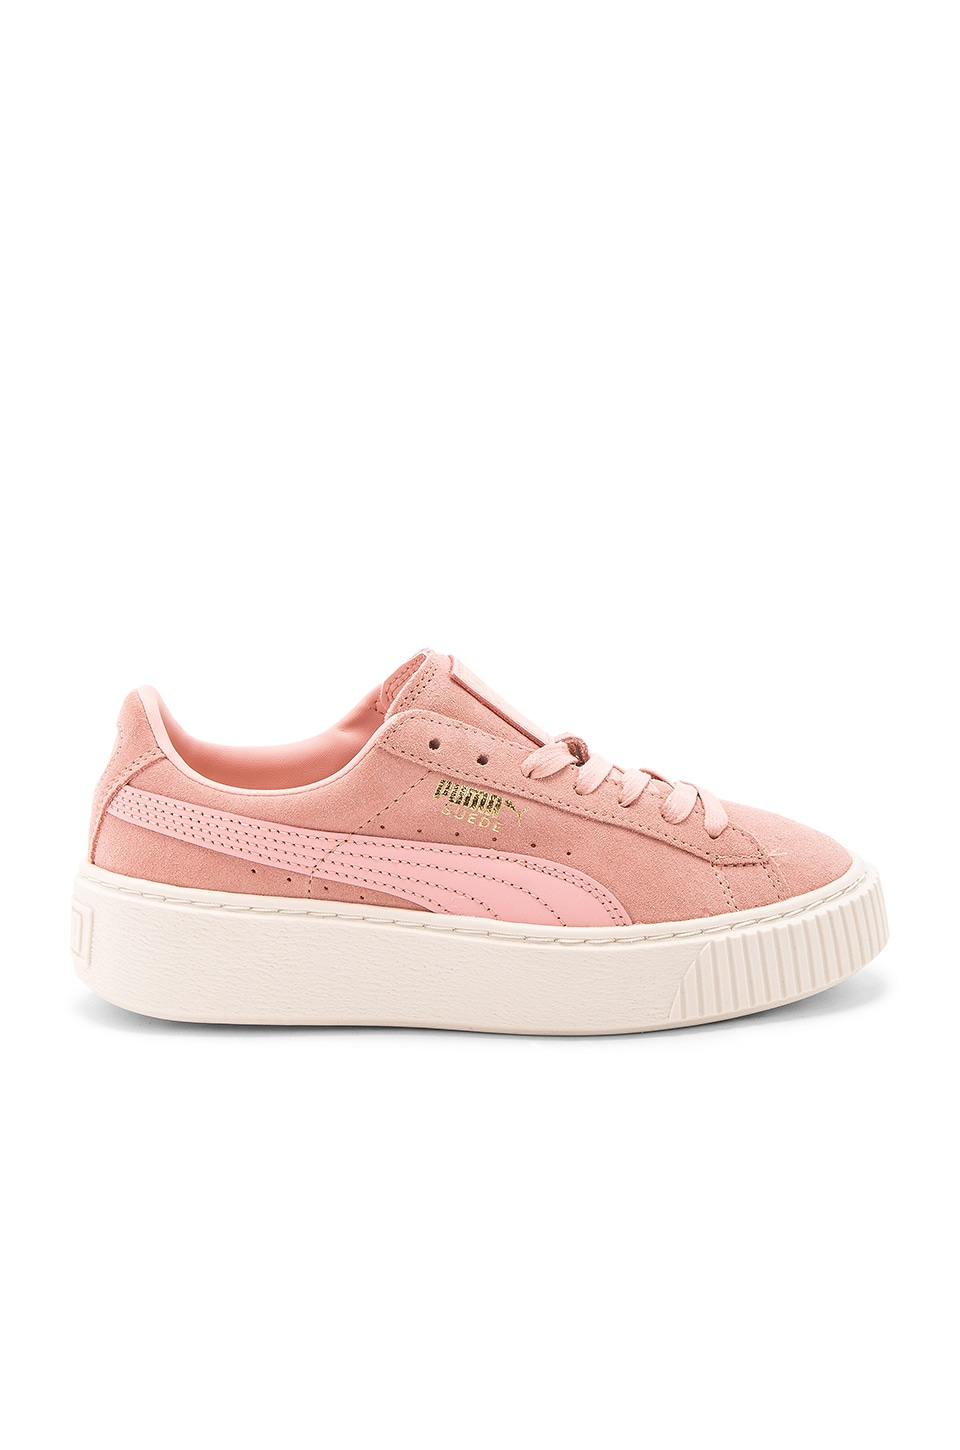 Puma Suede Core Platform in Coral Cloud Whisper White